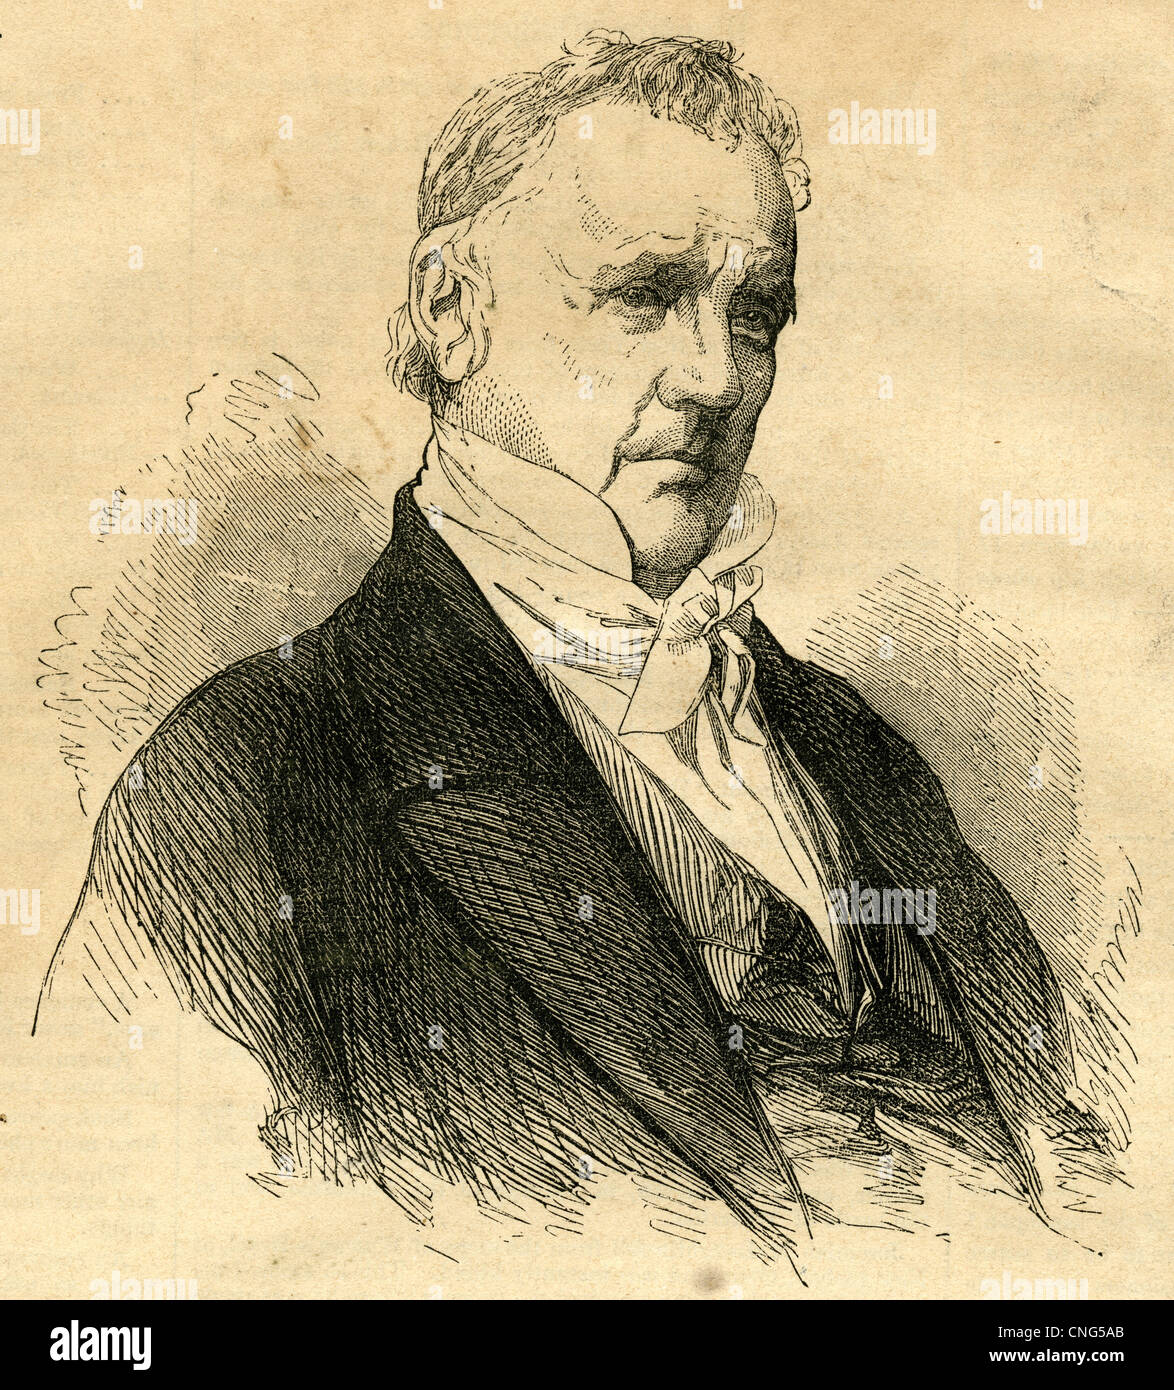 1854 engraving, James Buchanan. James Buchanan, Jr. (1791 – 1868) was the 15th President of the United States (1857–1861). - Stock Image